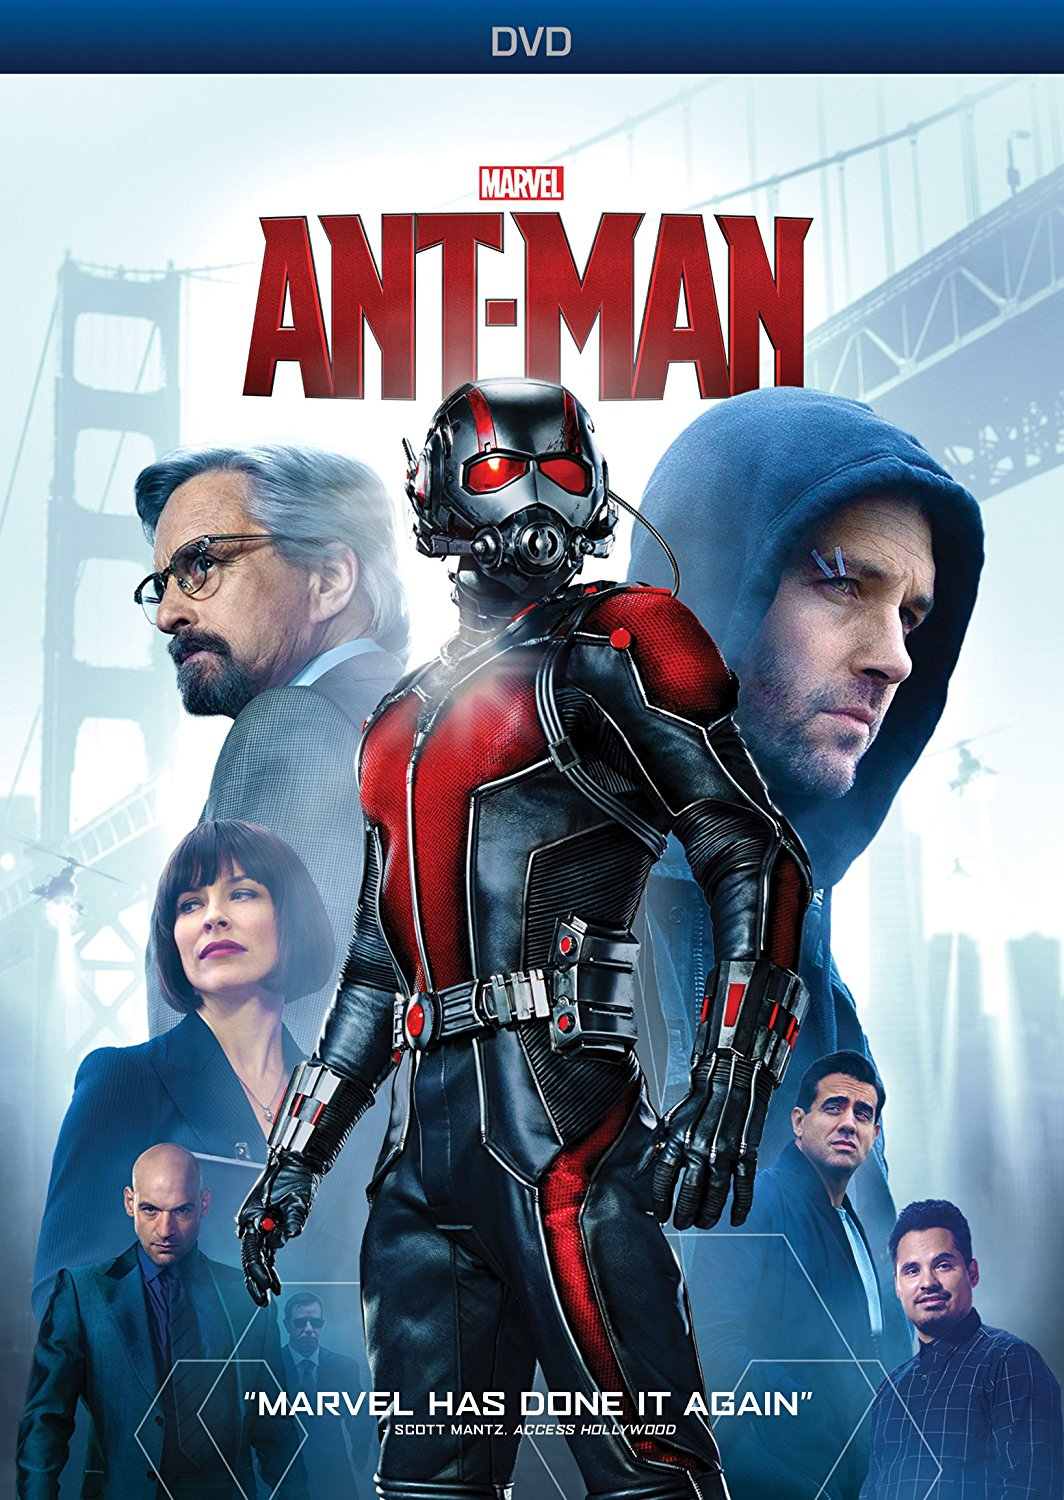 Image of Ant-Man.